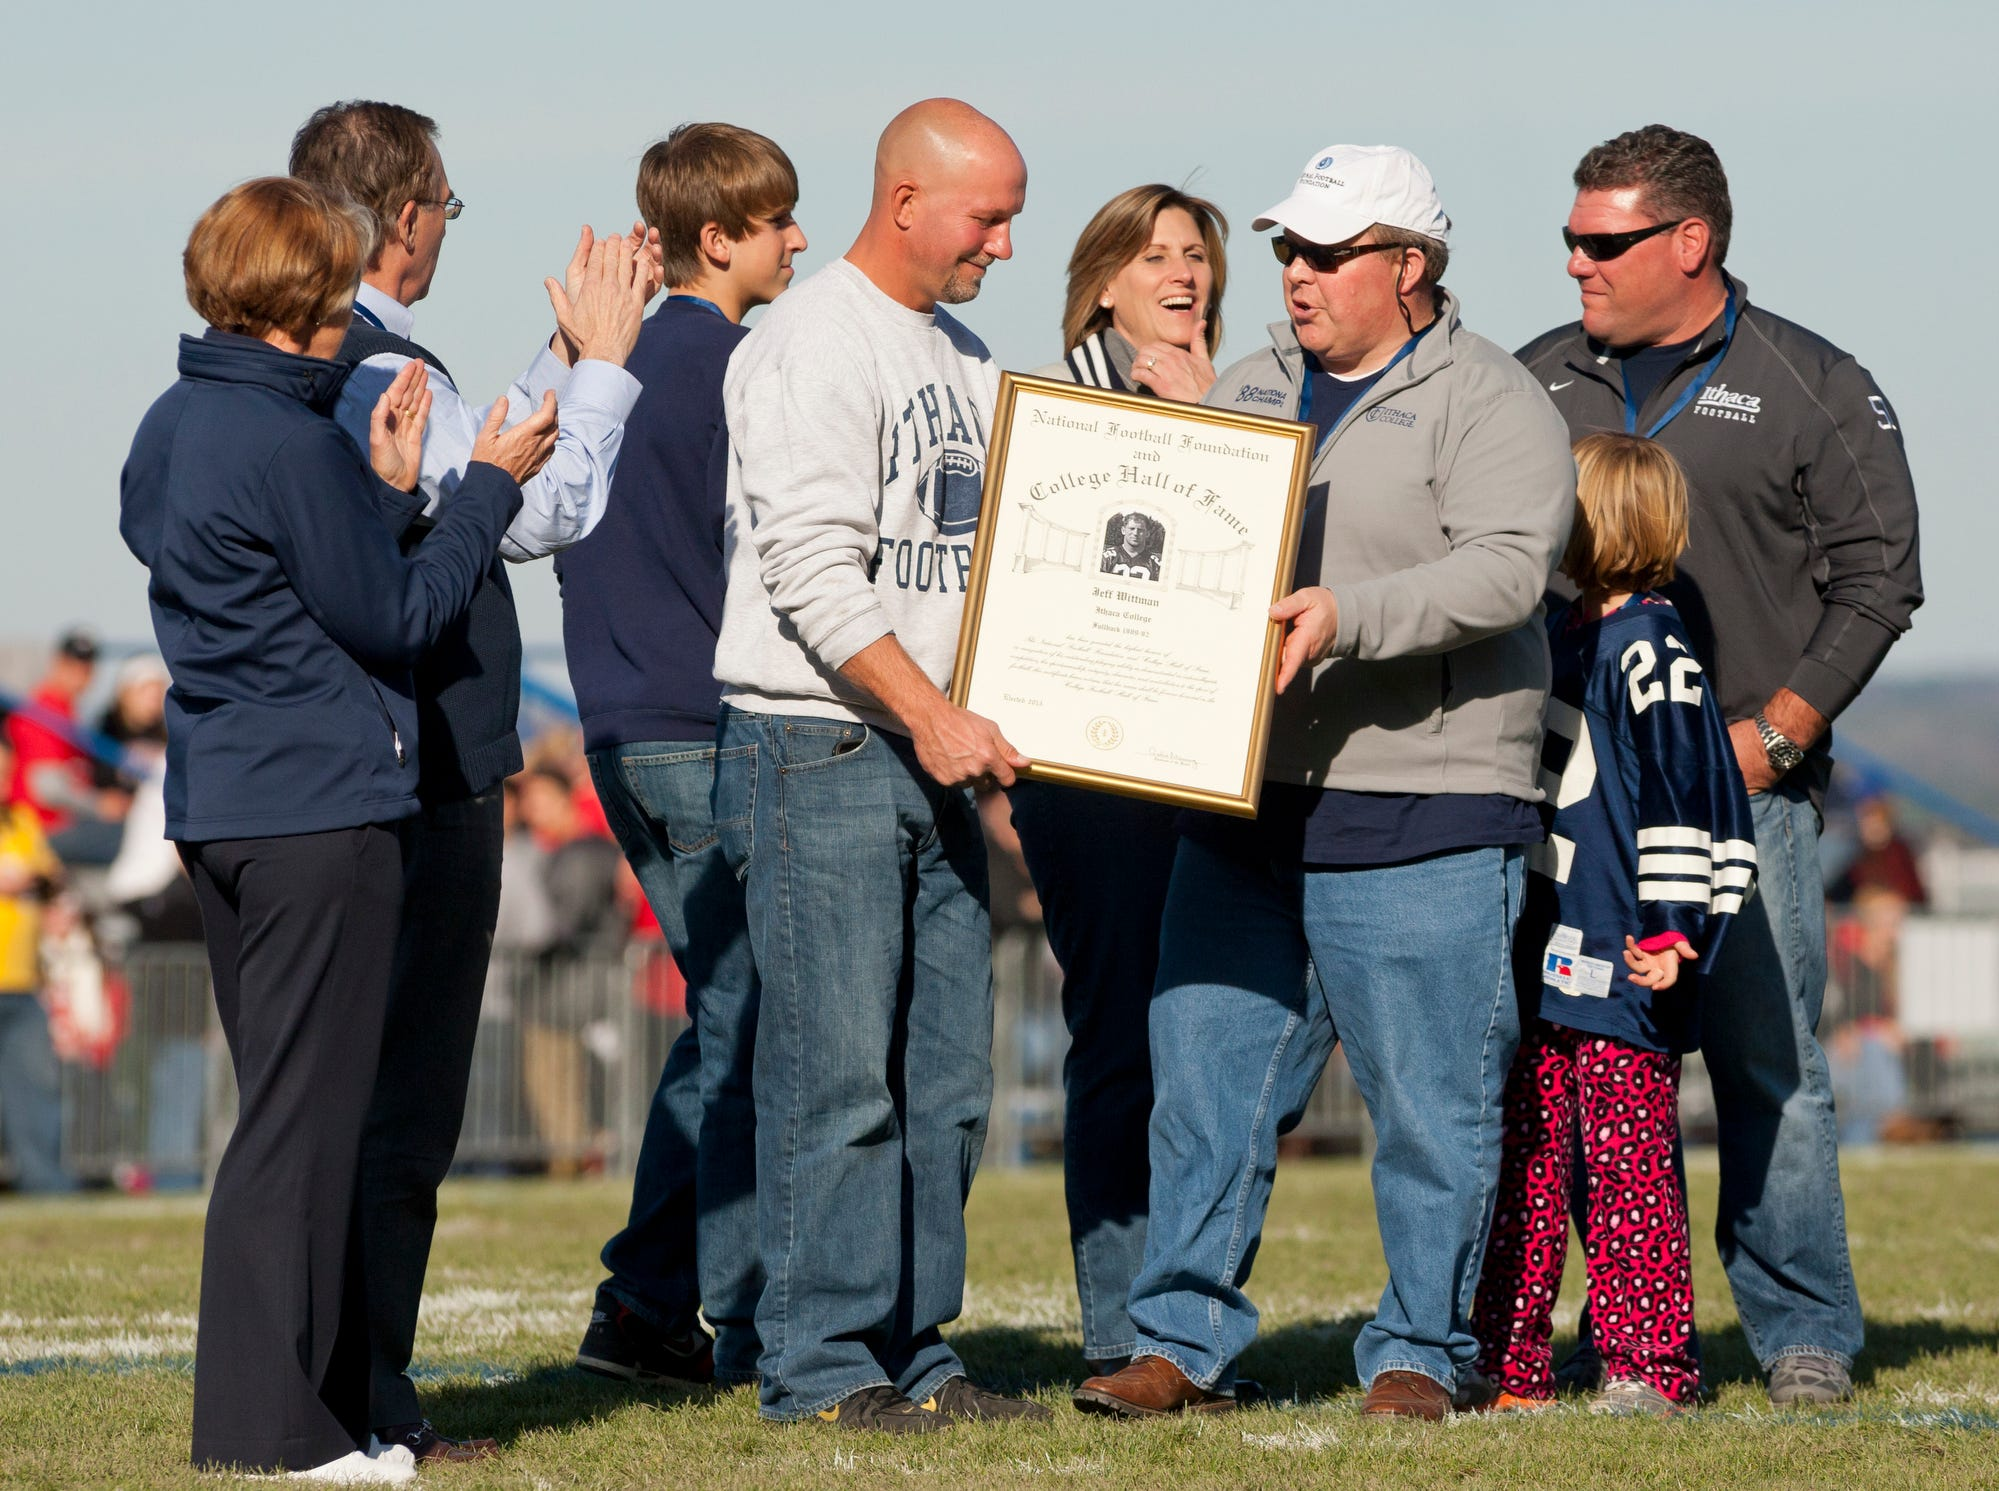 2013: Jeff Wittman, a three-time first-team All-American and holder of ICÕs career rushing yardage and touchdowns records, is honored in a halftime ceremony following his induction this fall into the College Football Hall of Fame.